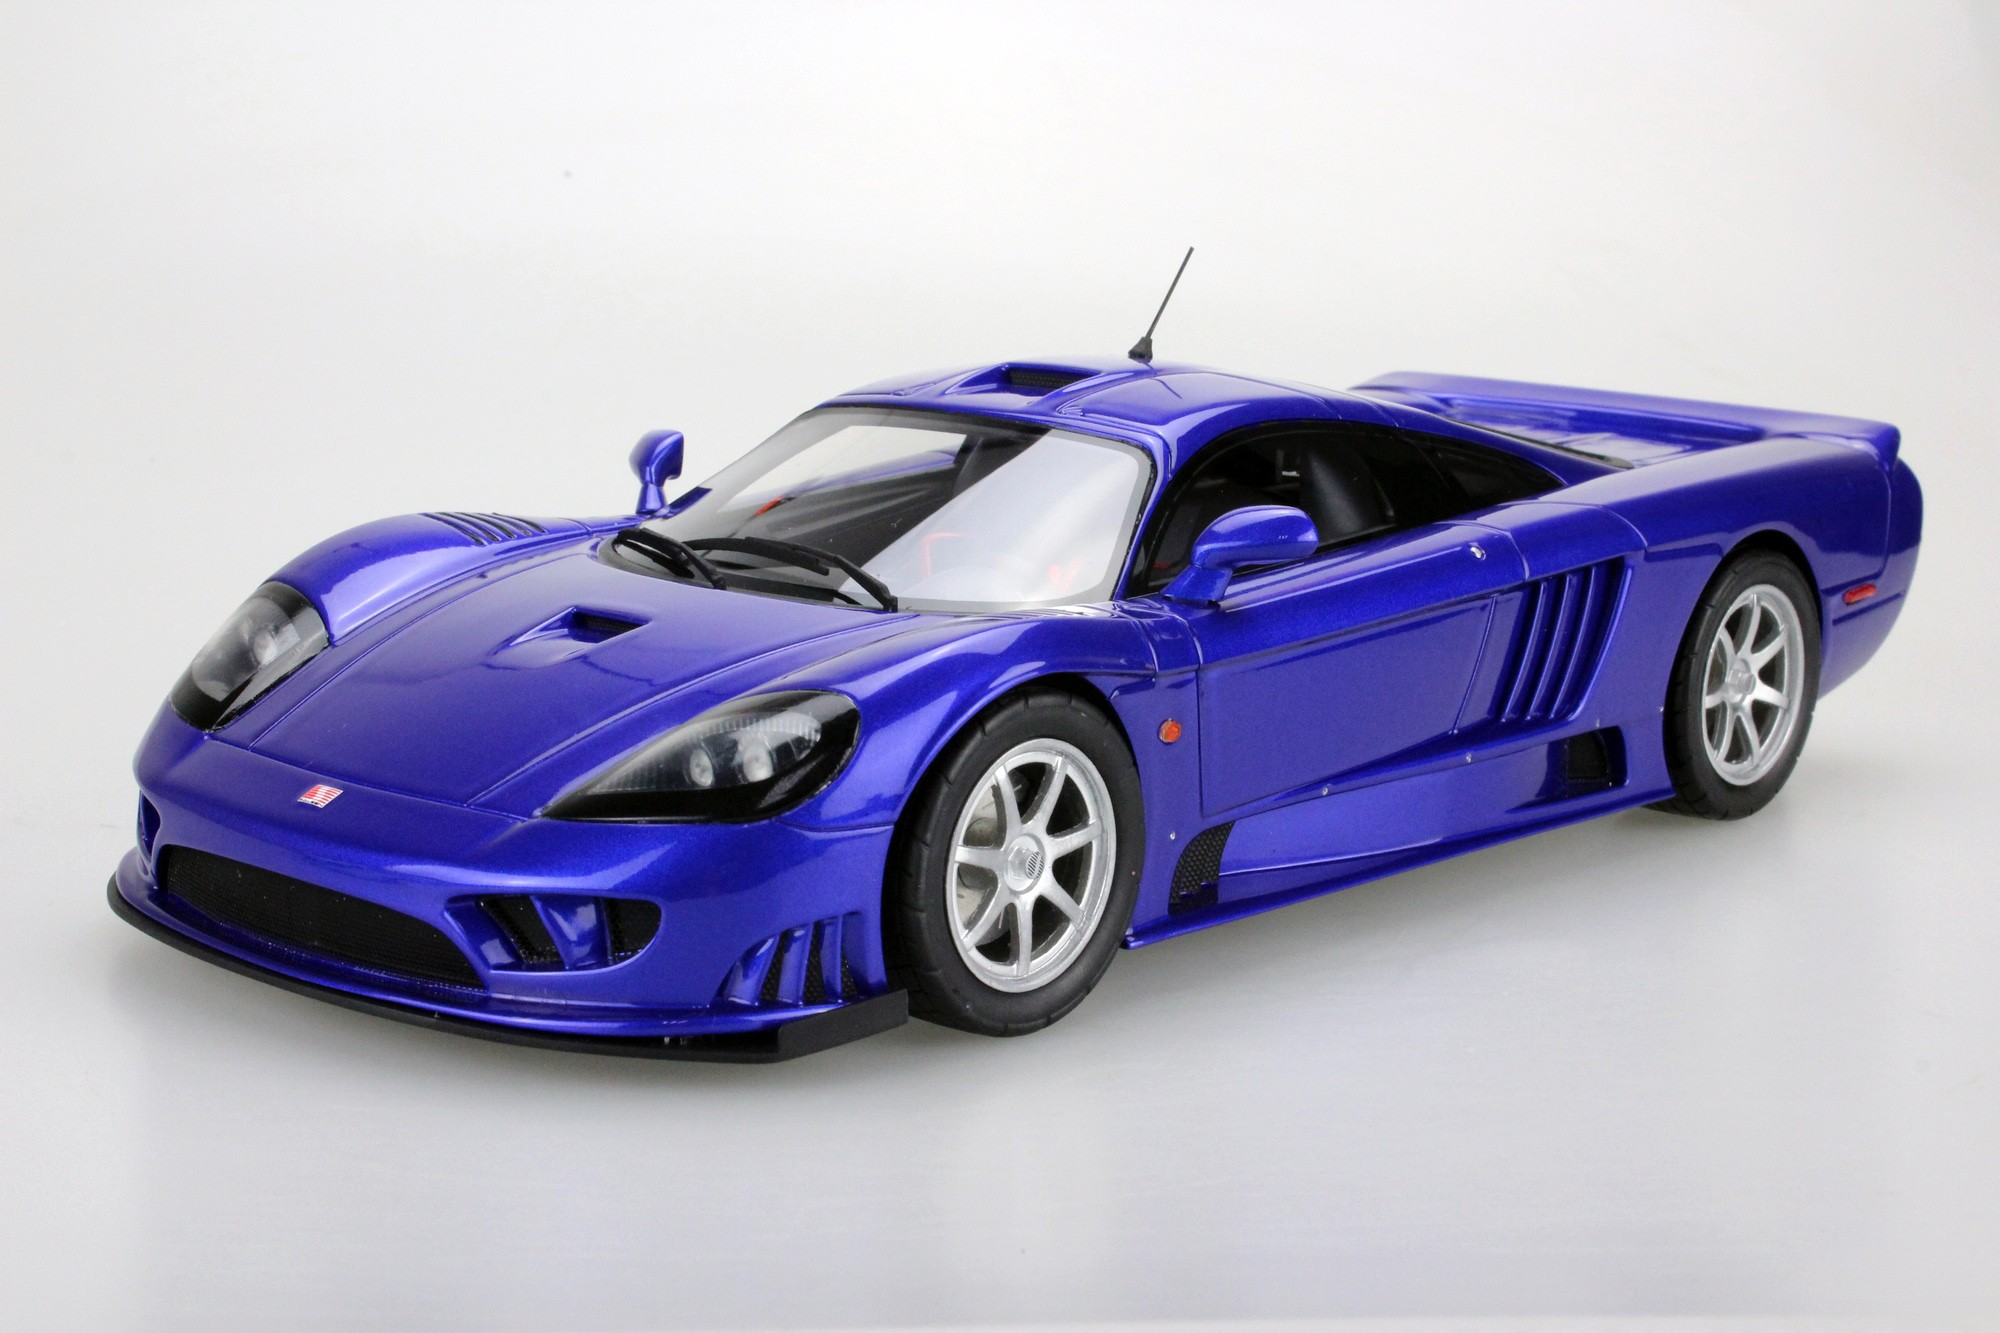 Top Marques Collectibles Saleen S7 Twin Turbo (Pre-order), 1:18 blue ...